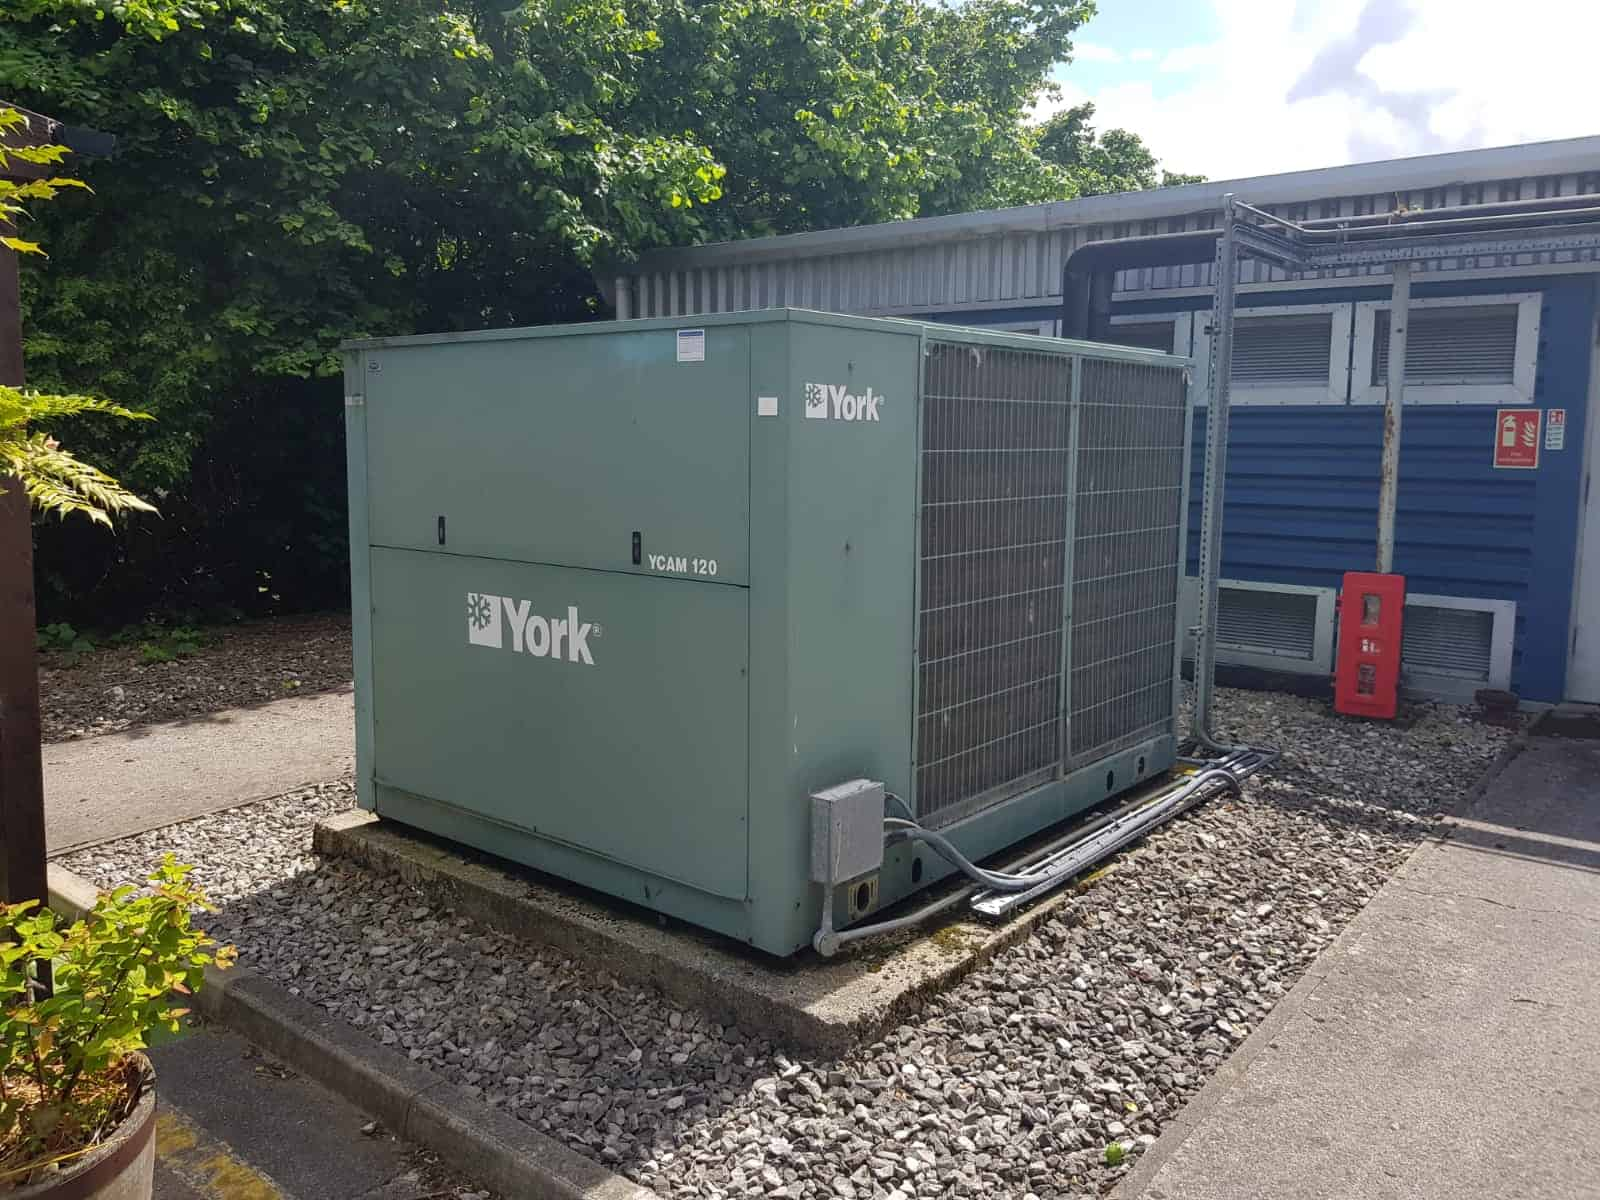 York Chiller with R22 Gas being replaced by Kimptons - Chiller replacement